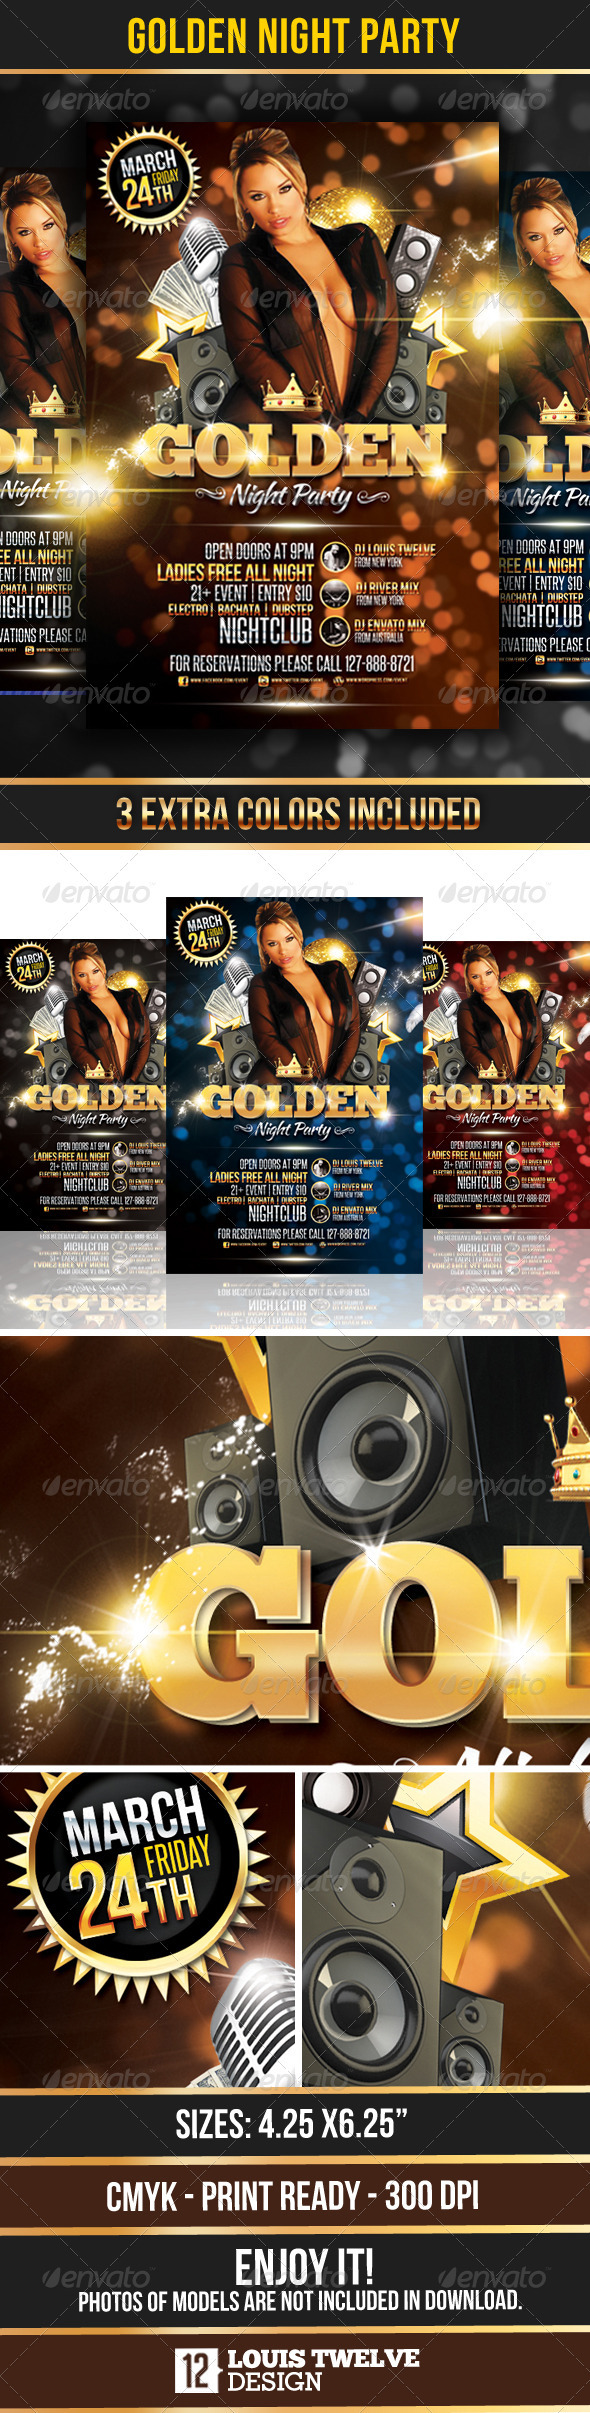 Golden Night Party - Flyer Template - Clubs & Parties Events